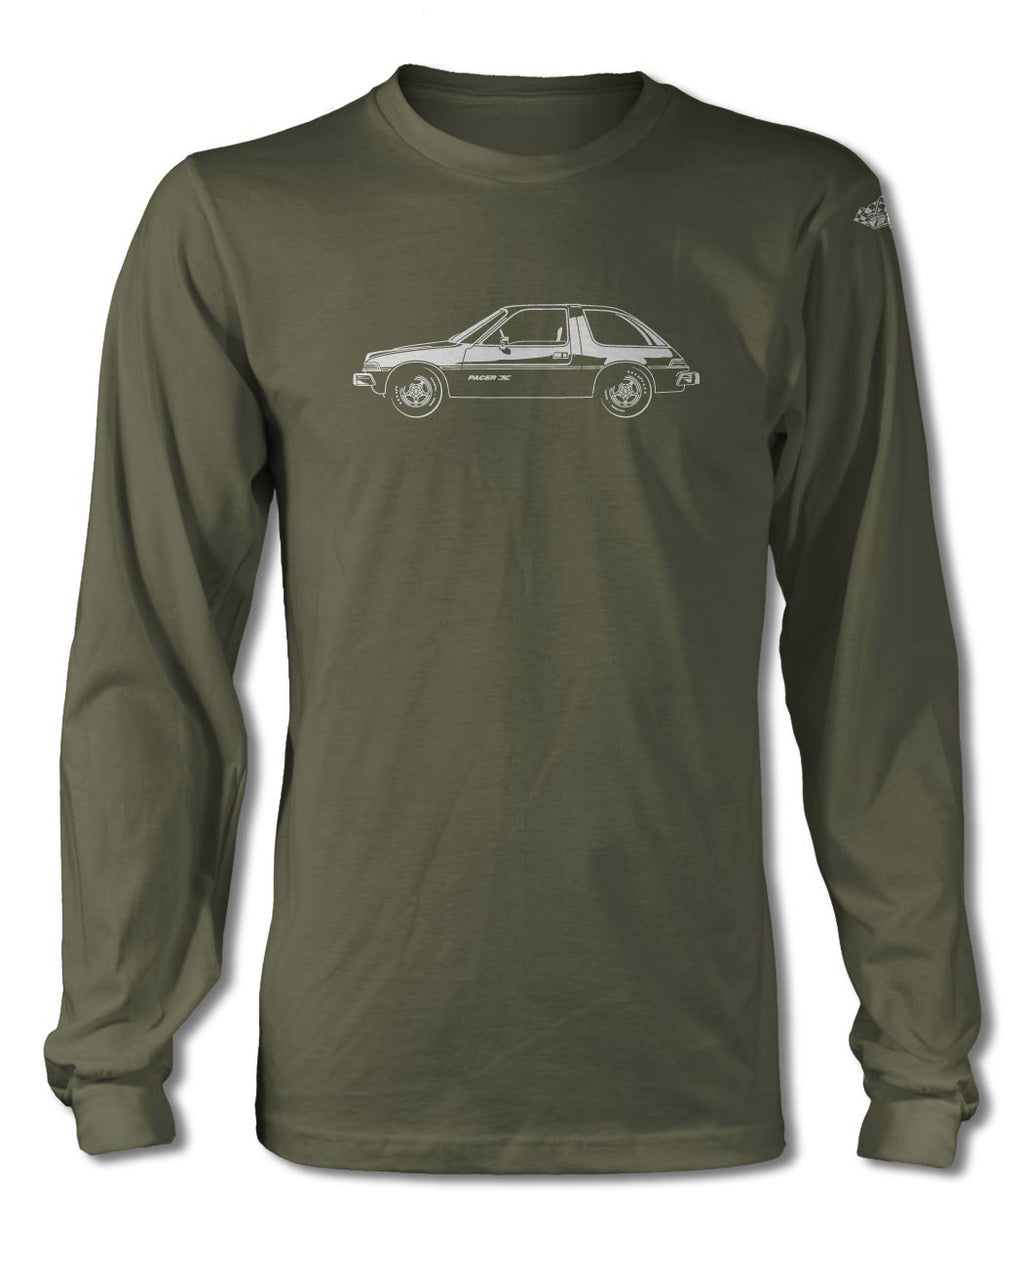 1975 AMC Pacer X T-Shirt - Long Sleeves - Side View